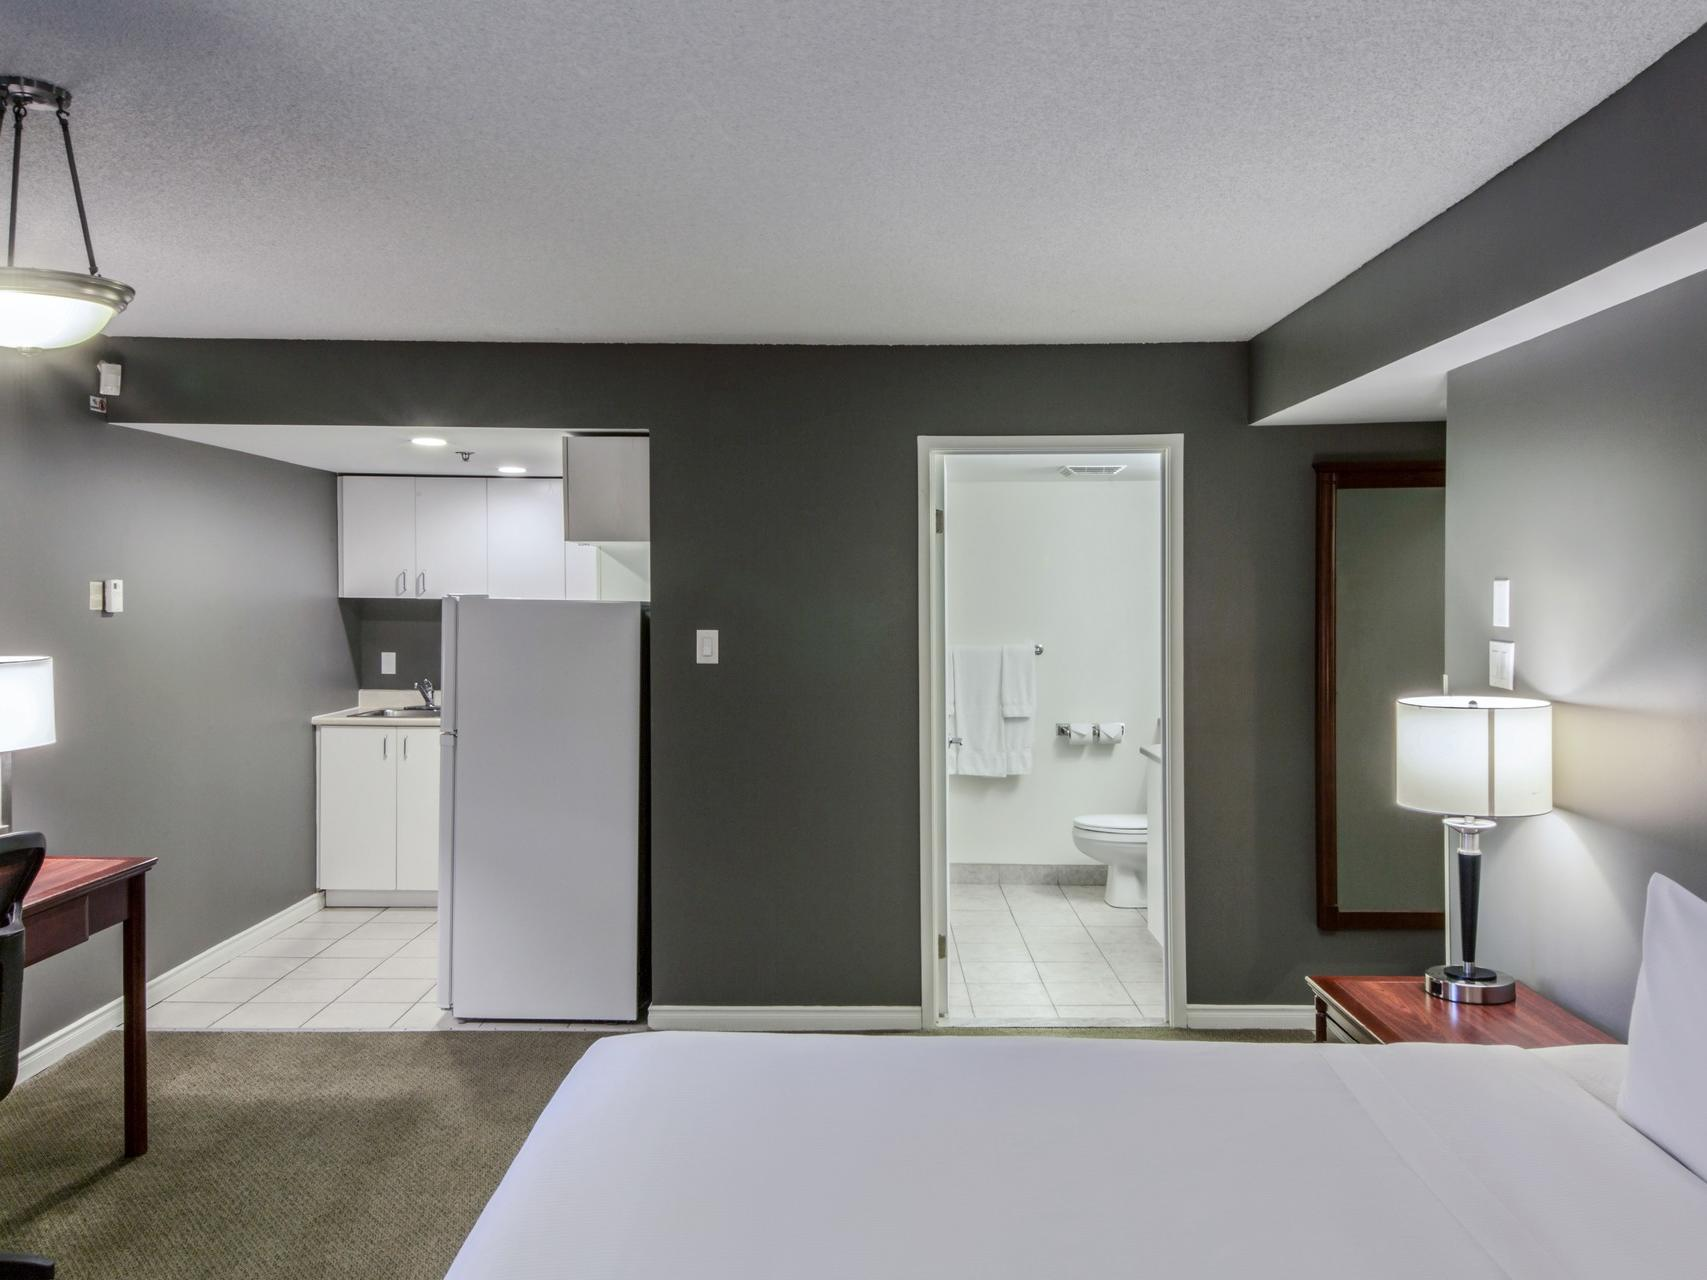 Studio King at Hotel Faubourg Montreal